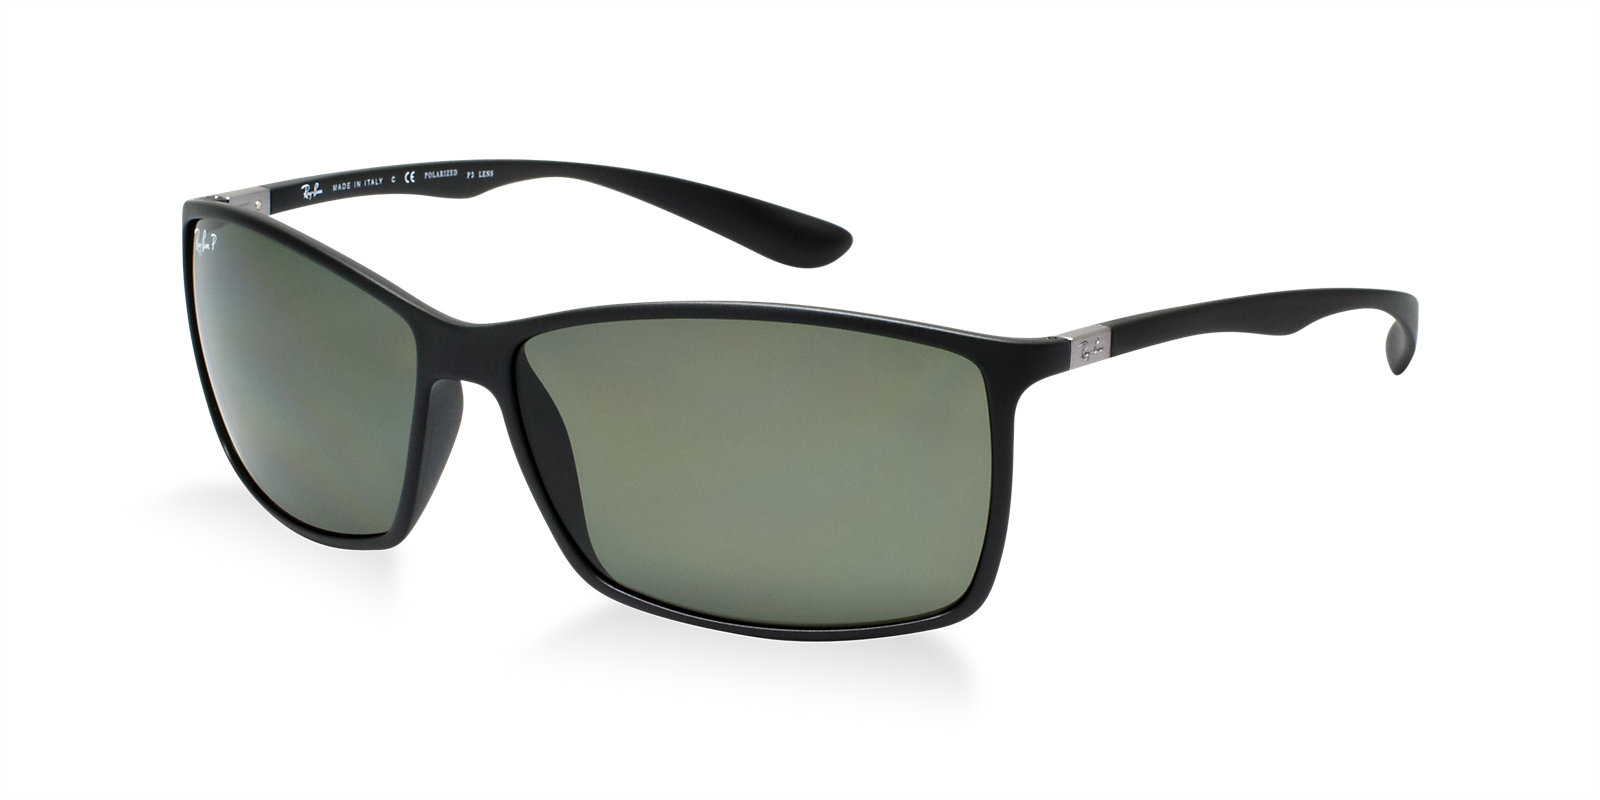 5ff90faf08 Previous  Next. Previous  Next. RAY-BAN RB4179 601S9A POLARIZED BLACK  LITEFORCE SUNGLASSES